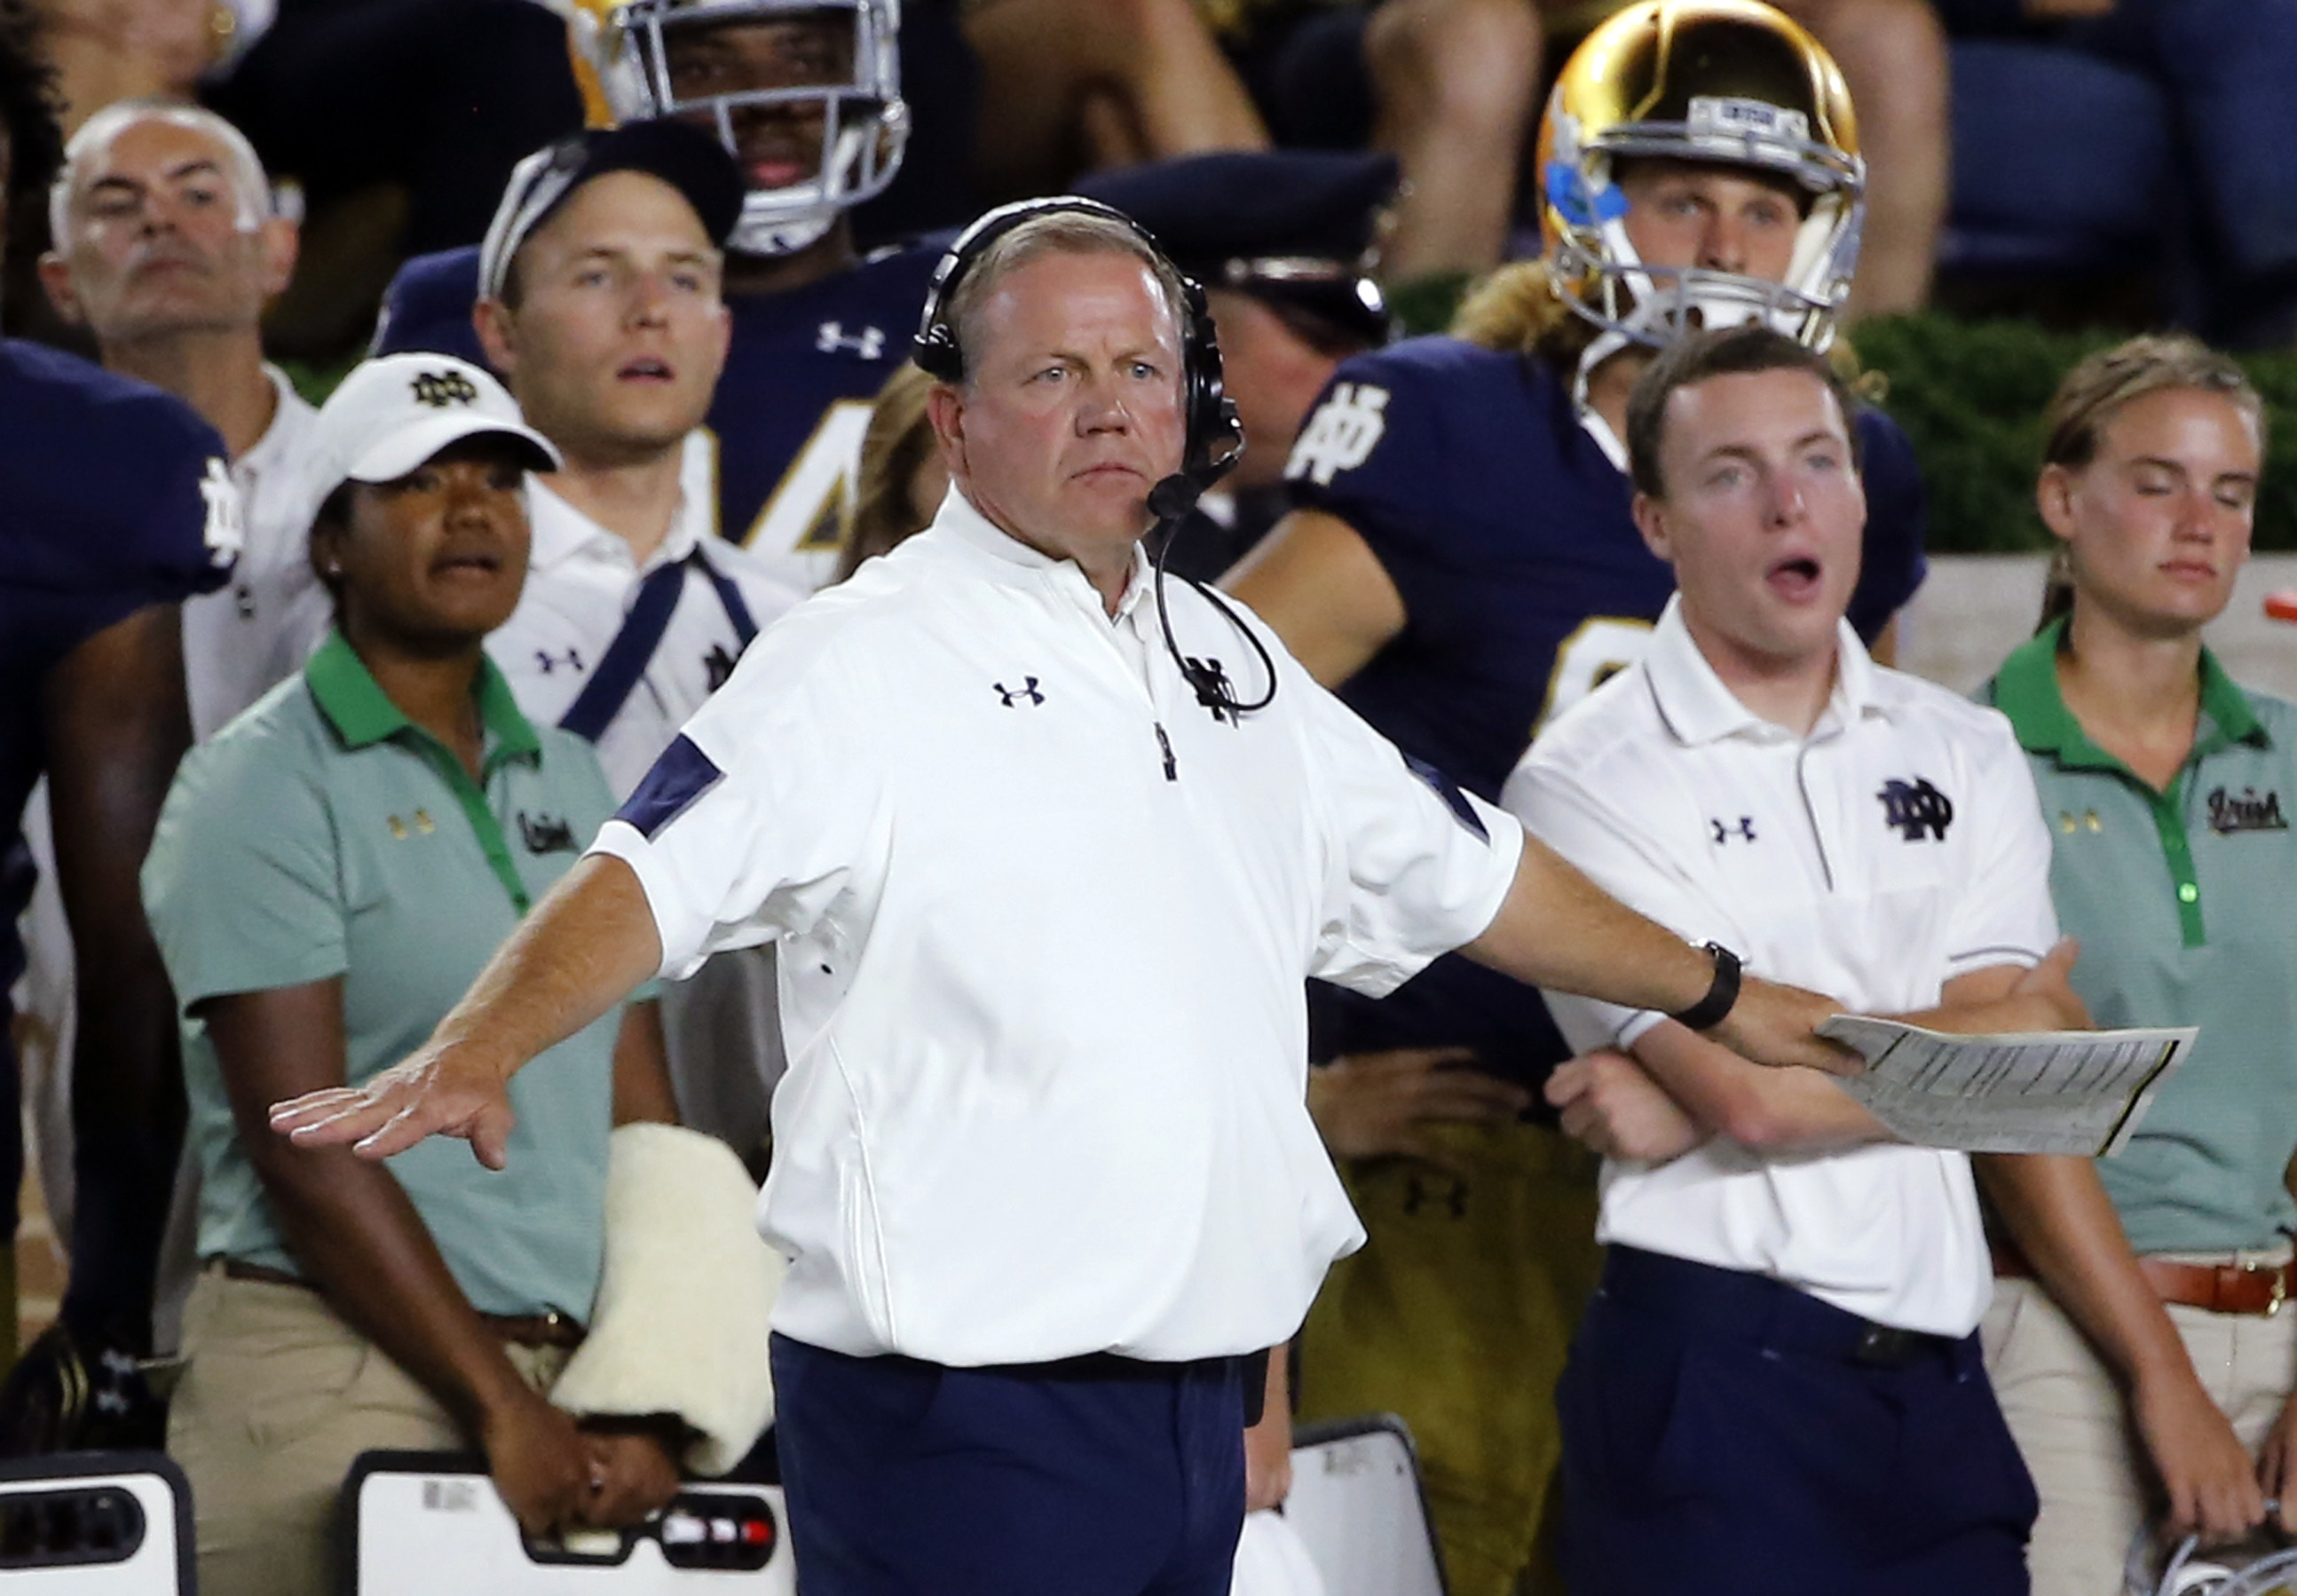 Notre Dame head coach Brian Kelly signals from the sideline during the first half of an NCAA college football game against Michigan State, Saturday, Sept. 17, 2016, in South Bend, Ind. (AP Photo/Charles Rex Arbogast)